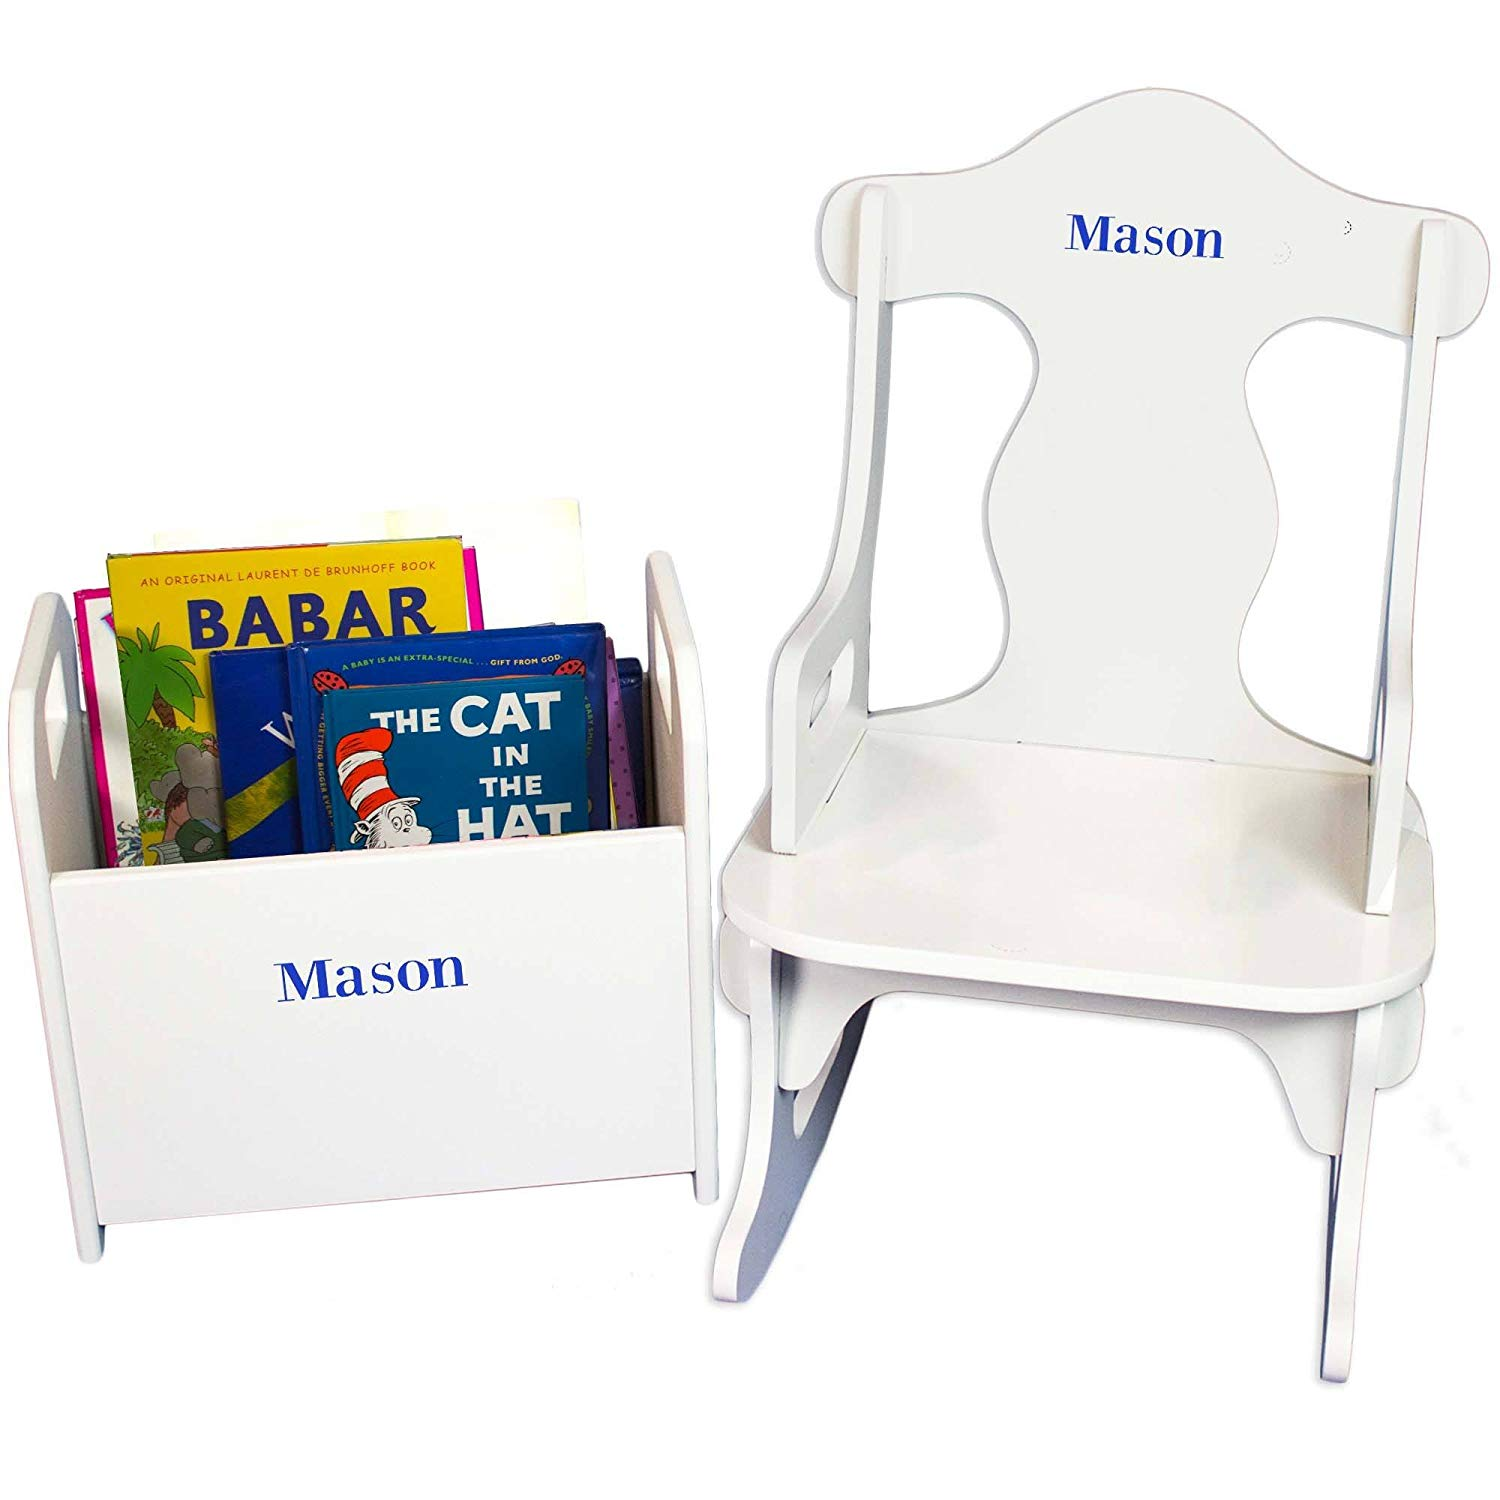 MyBambino Personalized Boys with name only Book Holder and Puzzle Rocker Set